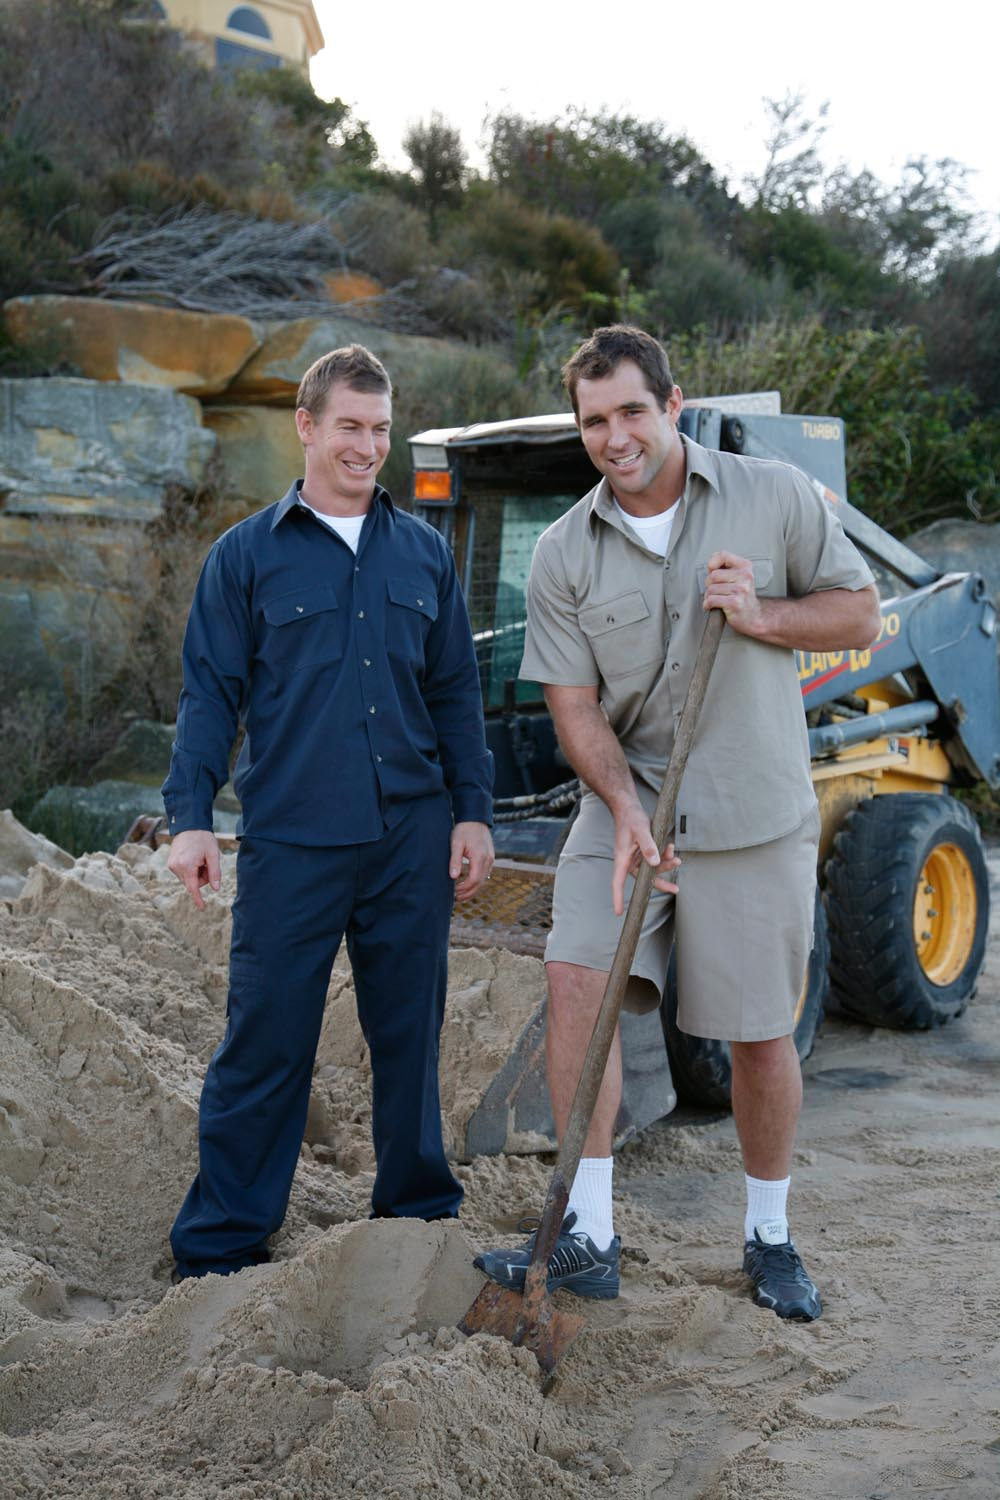 These guys look a little bit too tidy to be shoveling dirt at the end of the day #benross